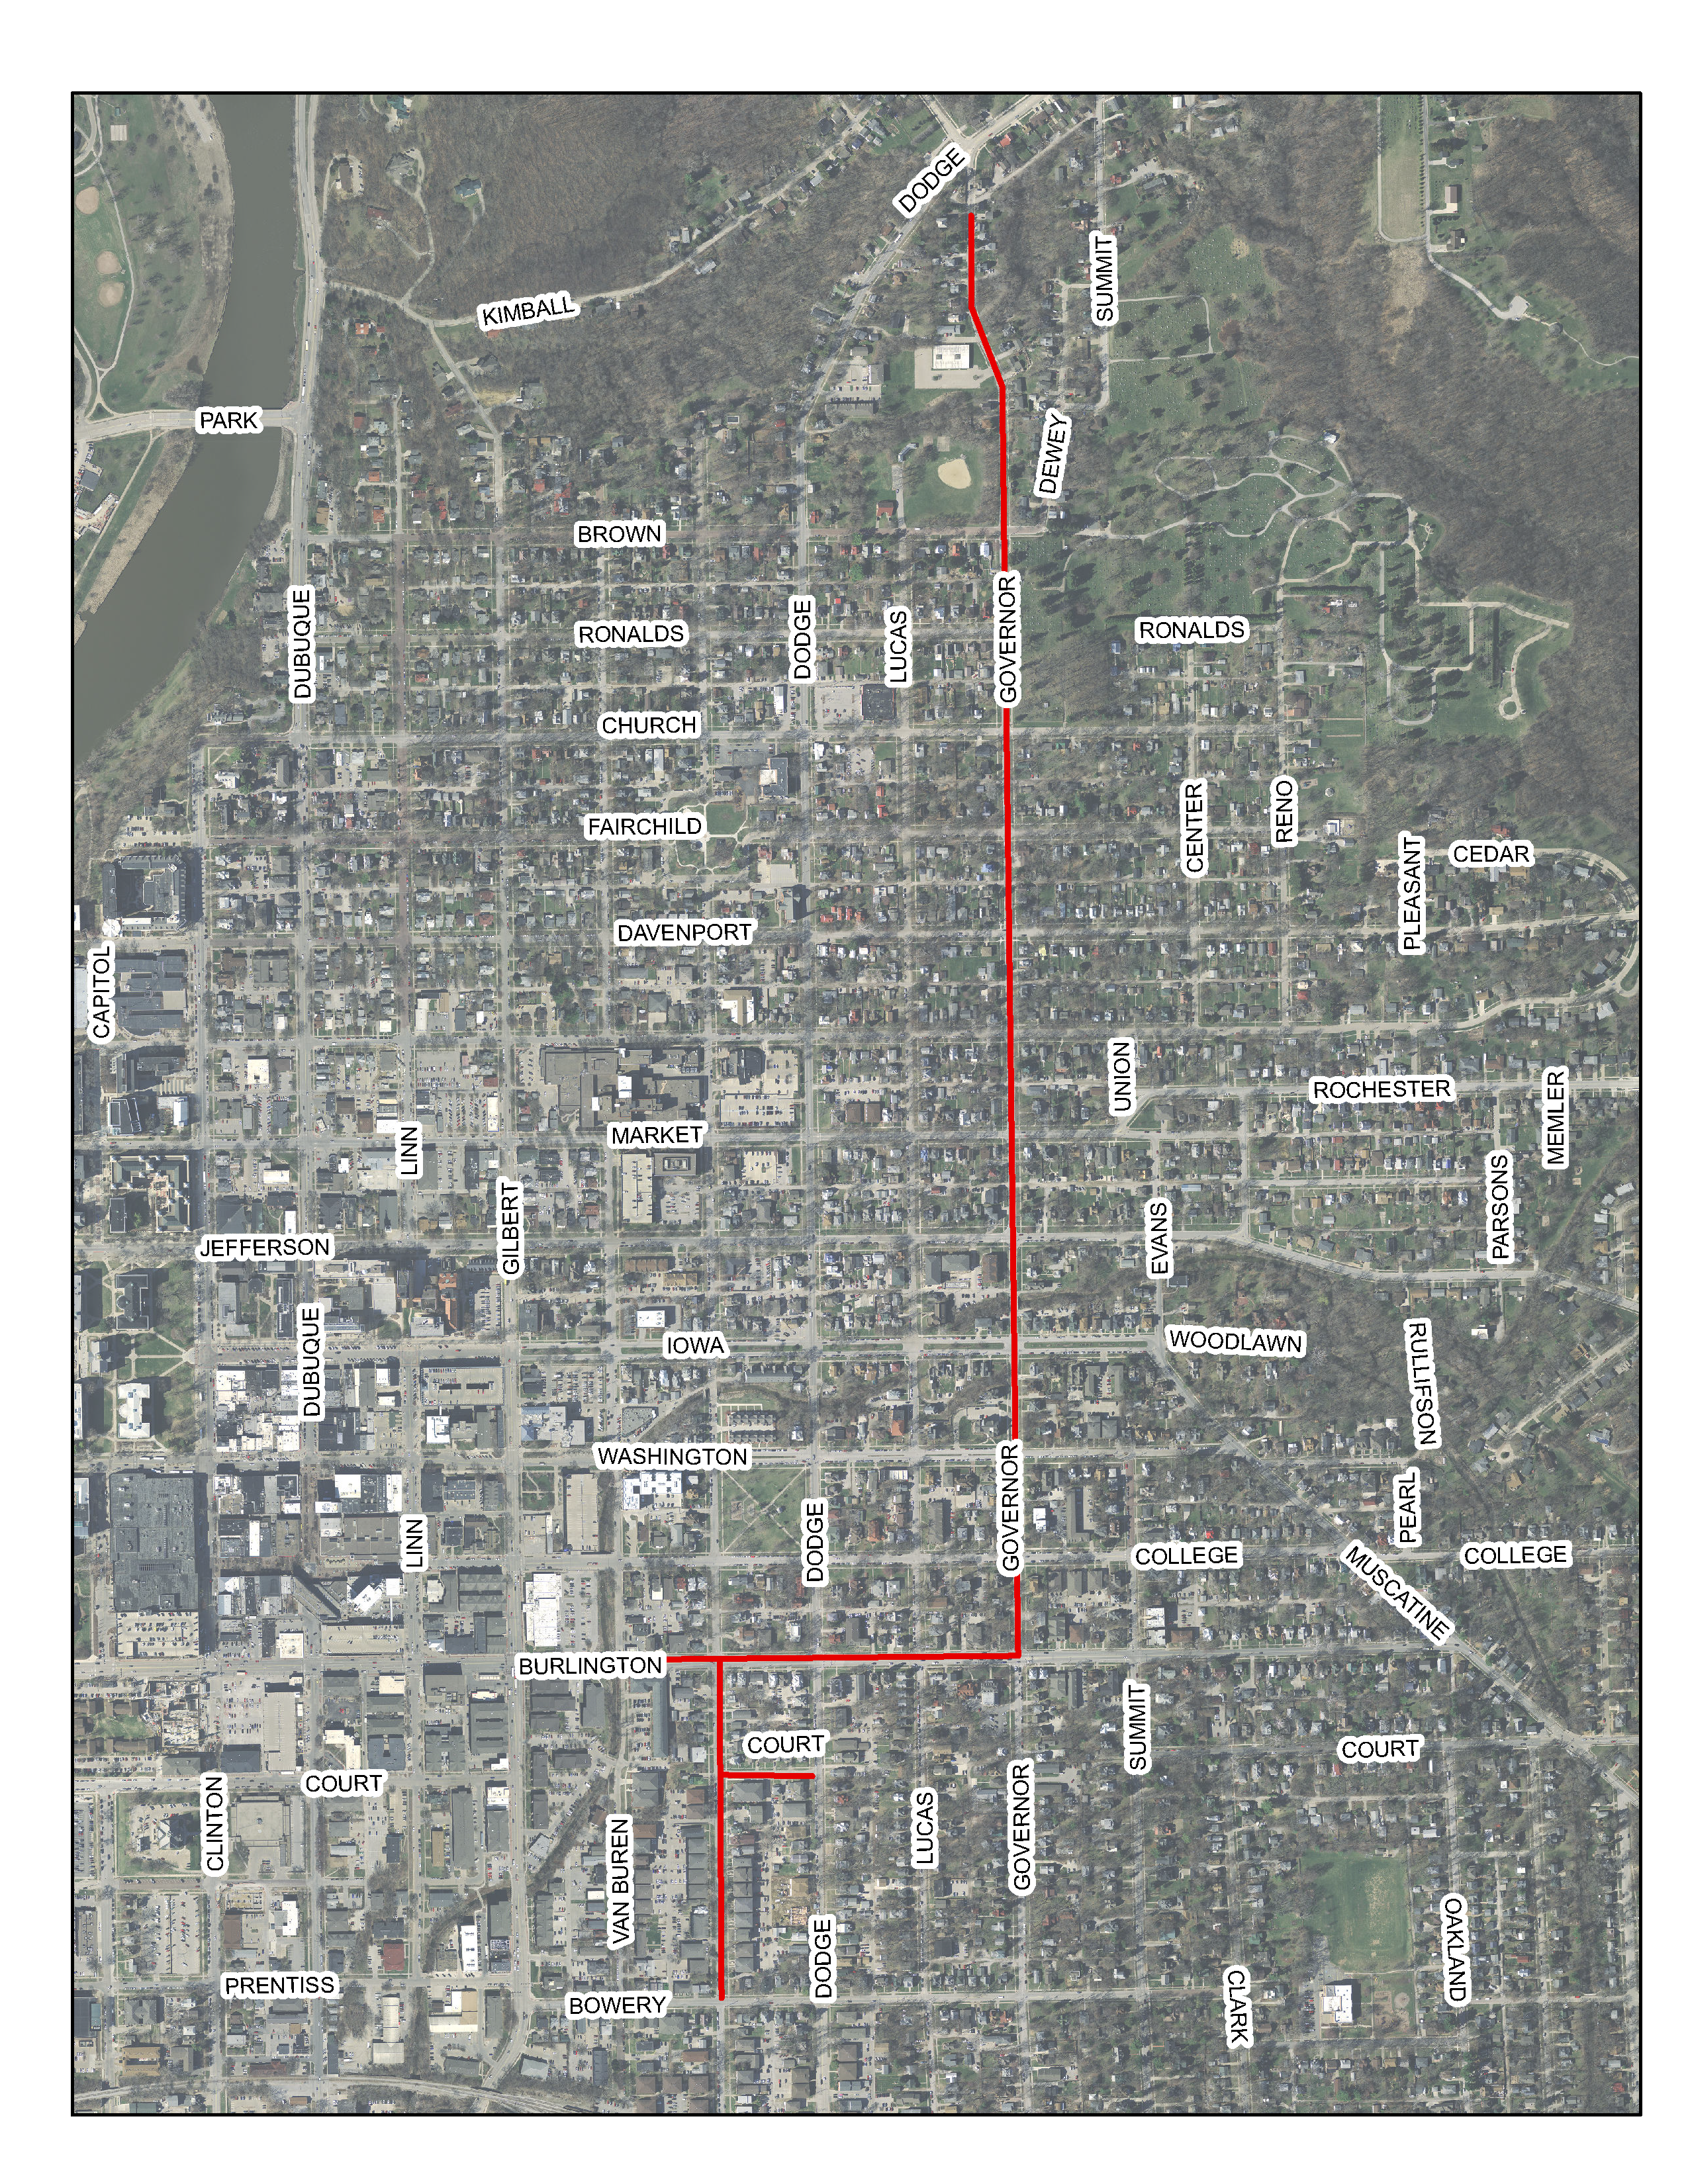 A map of the asphalt resurfacing project area.